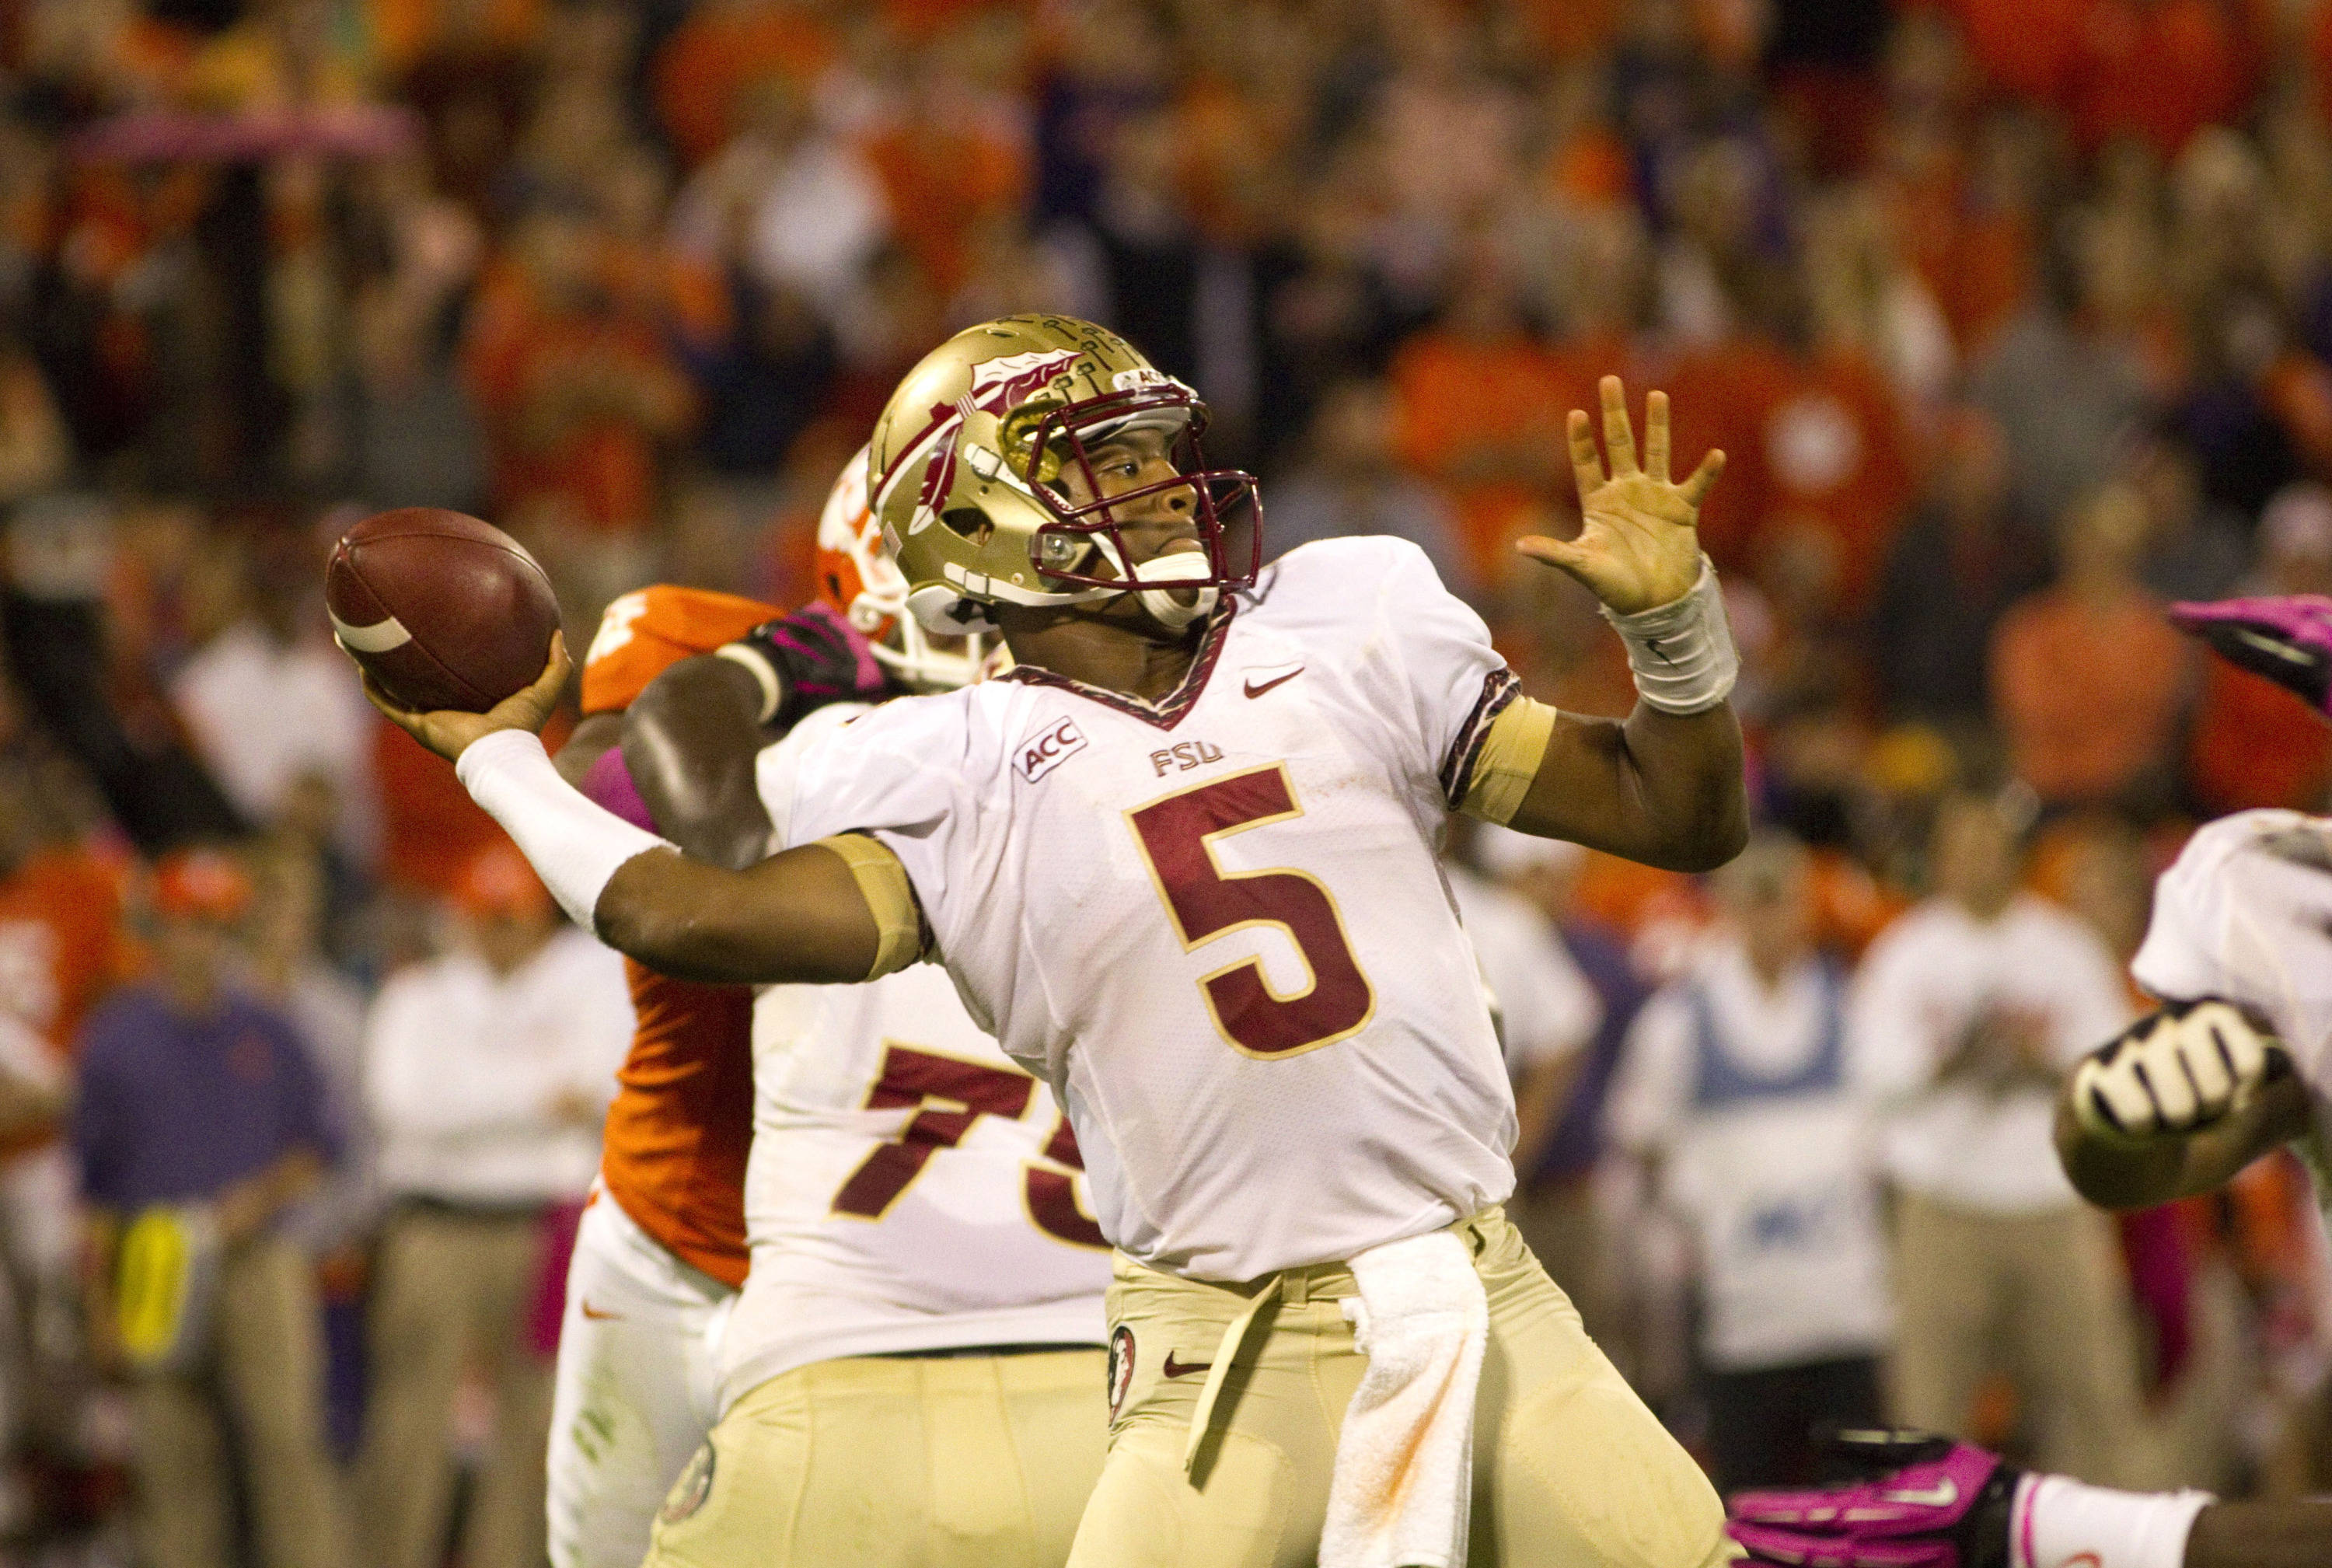 Florida State Seminoles quarterback Jameis Winston (5) throws the ball during the second half against the Clemson Tigers at Clemson Memorial Stadium. Seminoles won 51-14. (Joshua S. Kelly-USA TODAY Sports)